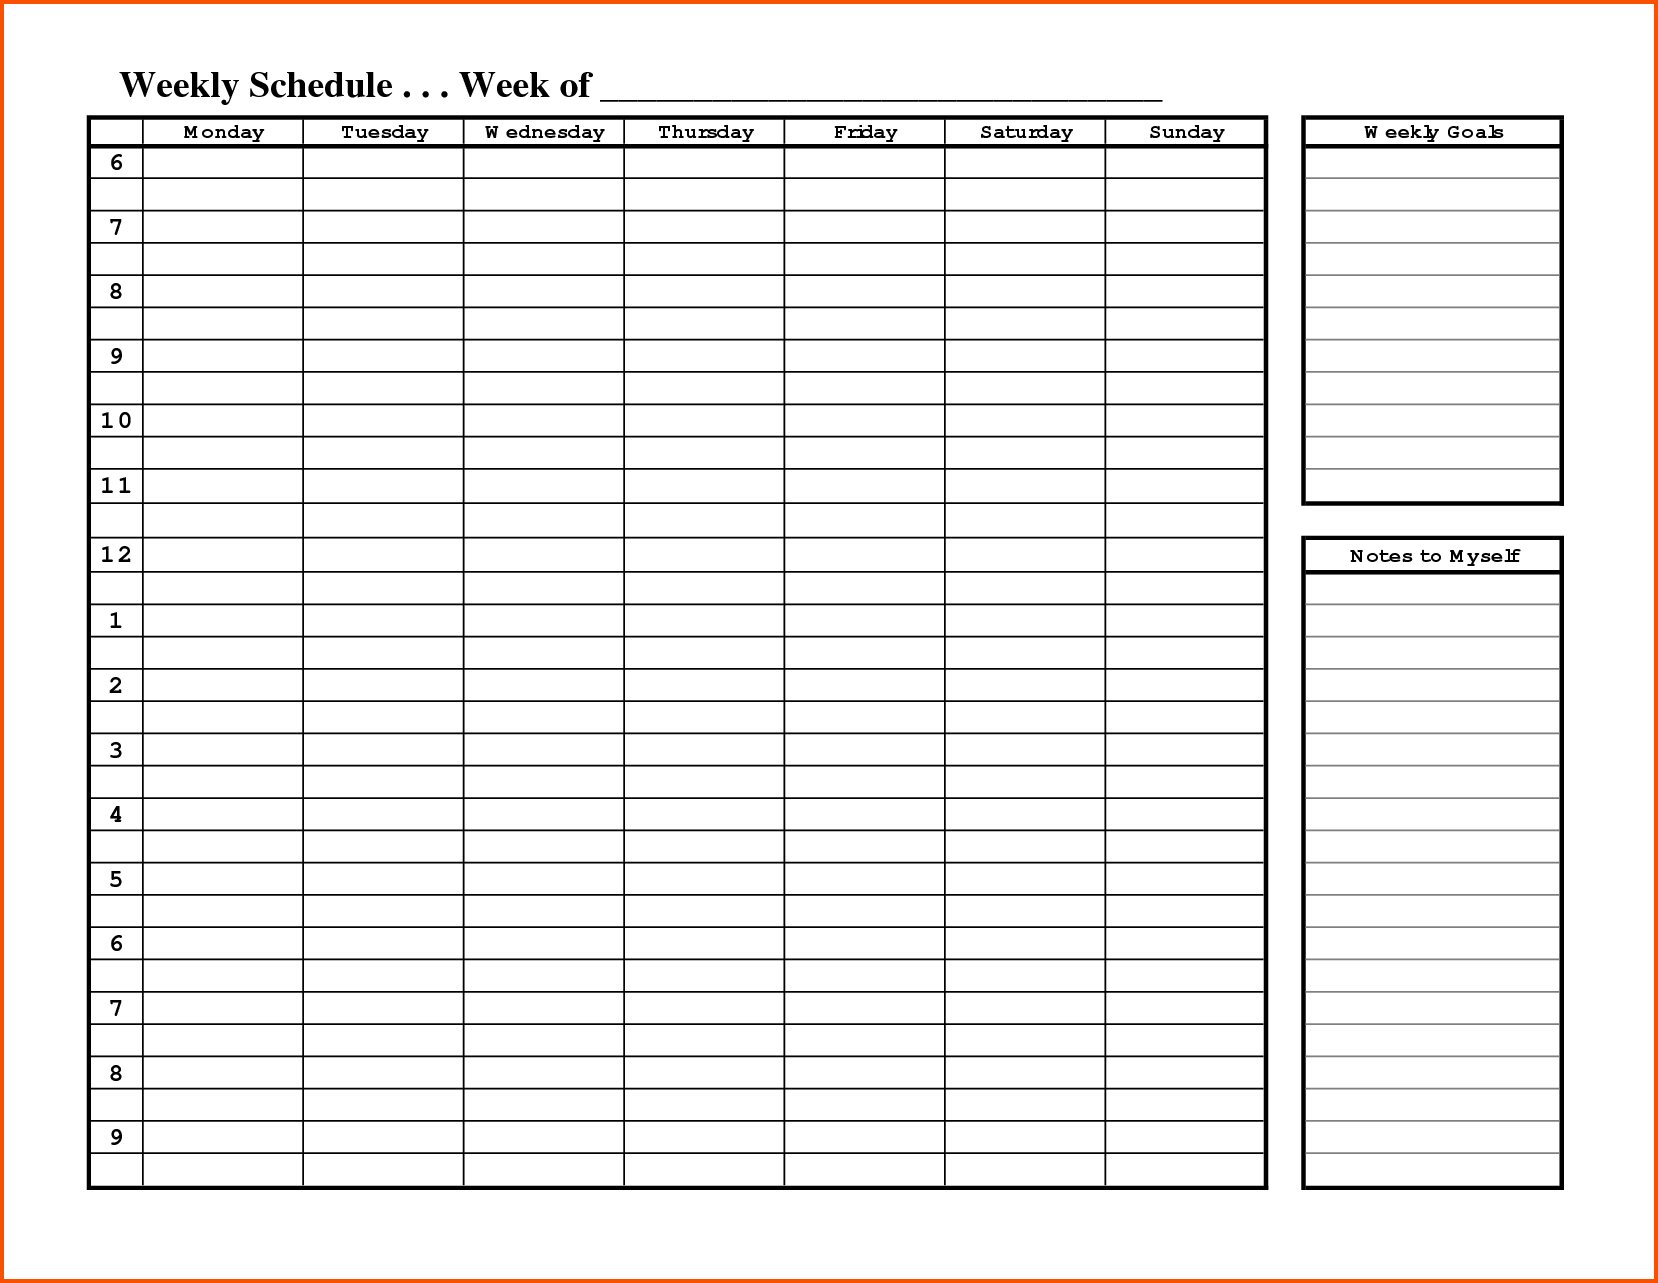 Free Printable Weekly Employee Schedule Template With Weekly Goals